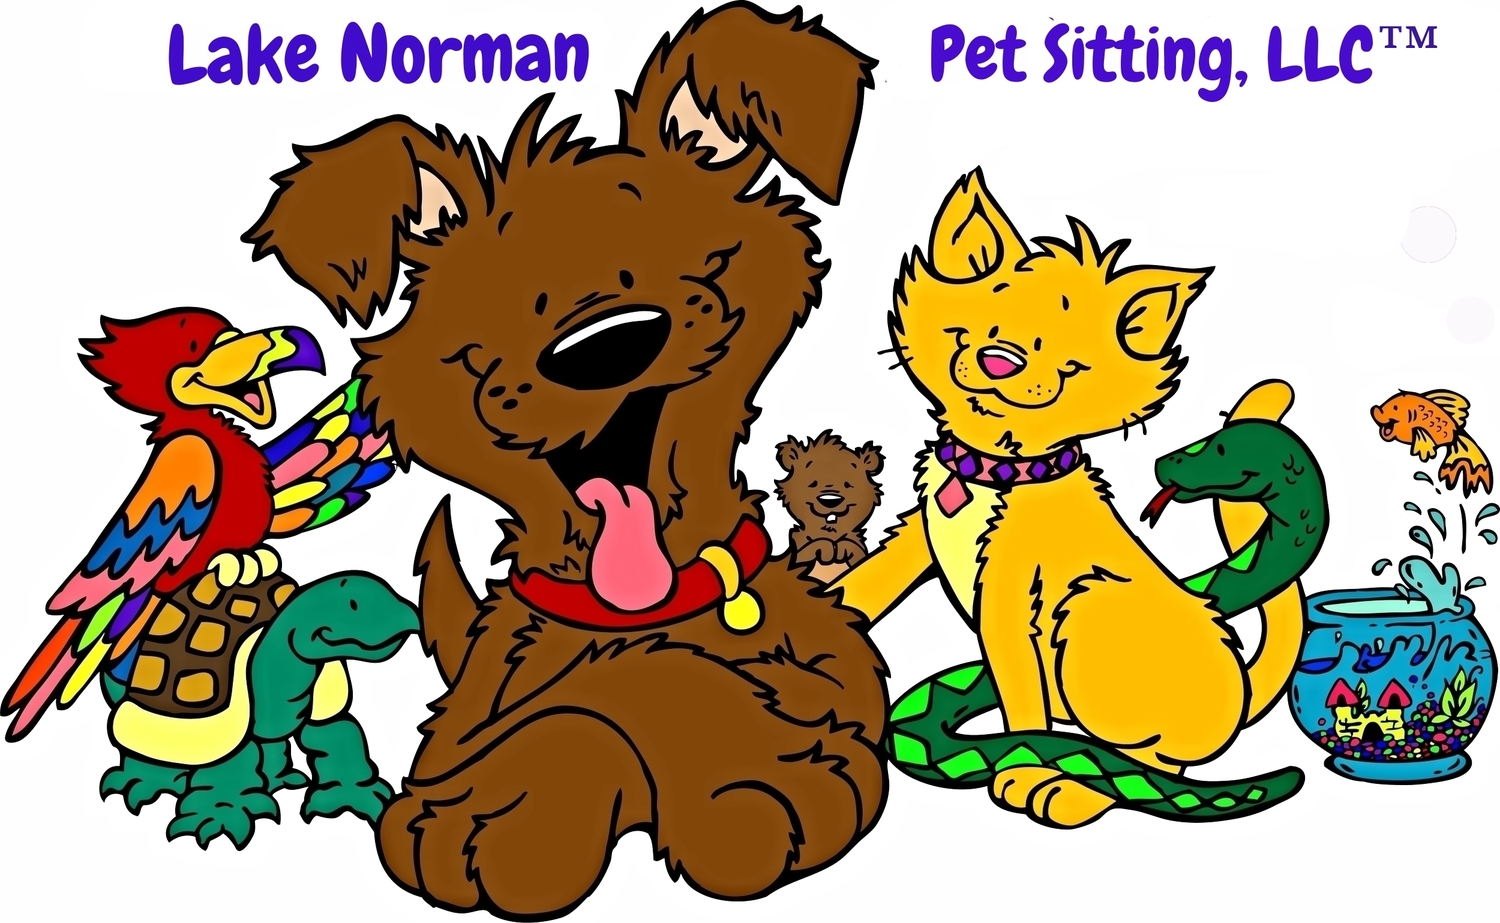 Lake Norman Pet Sitting, LLC™